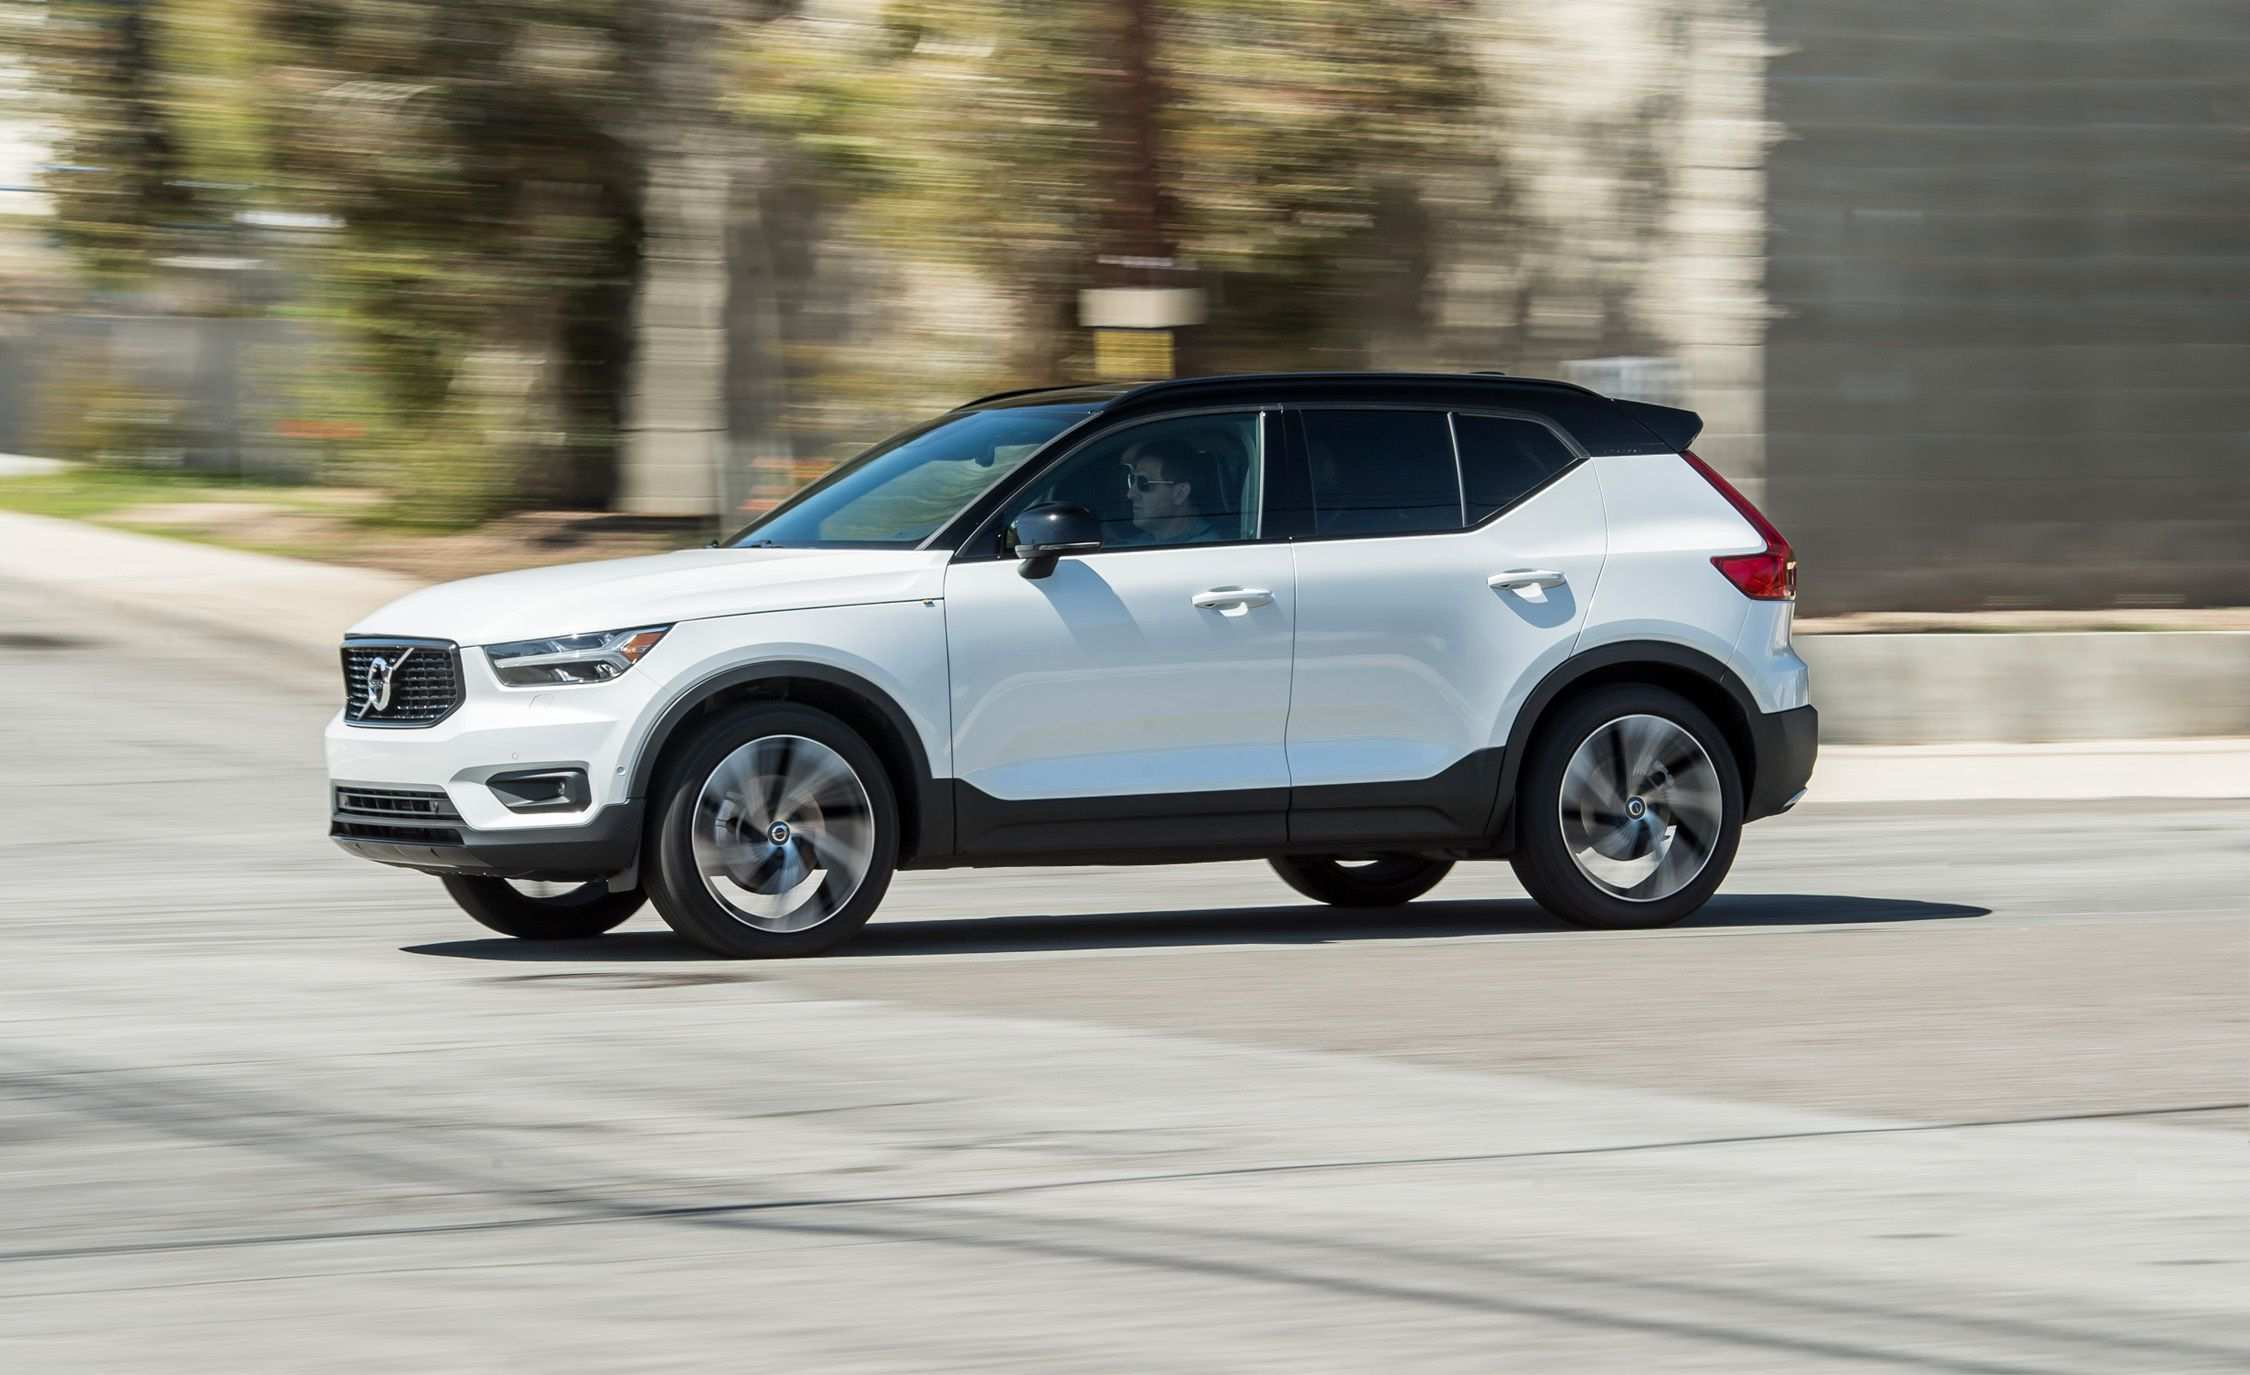 36 Great 2019 Volvo Xc40 Gas Mileage Engine by 2019 Volvo Xc40 Gas Mileage